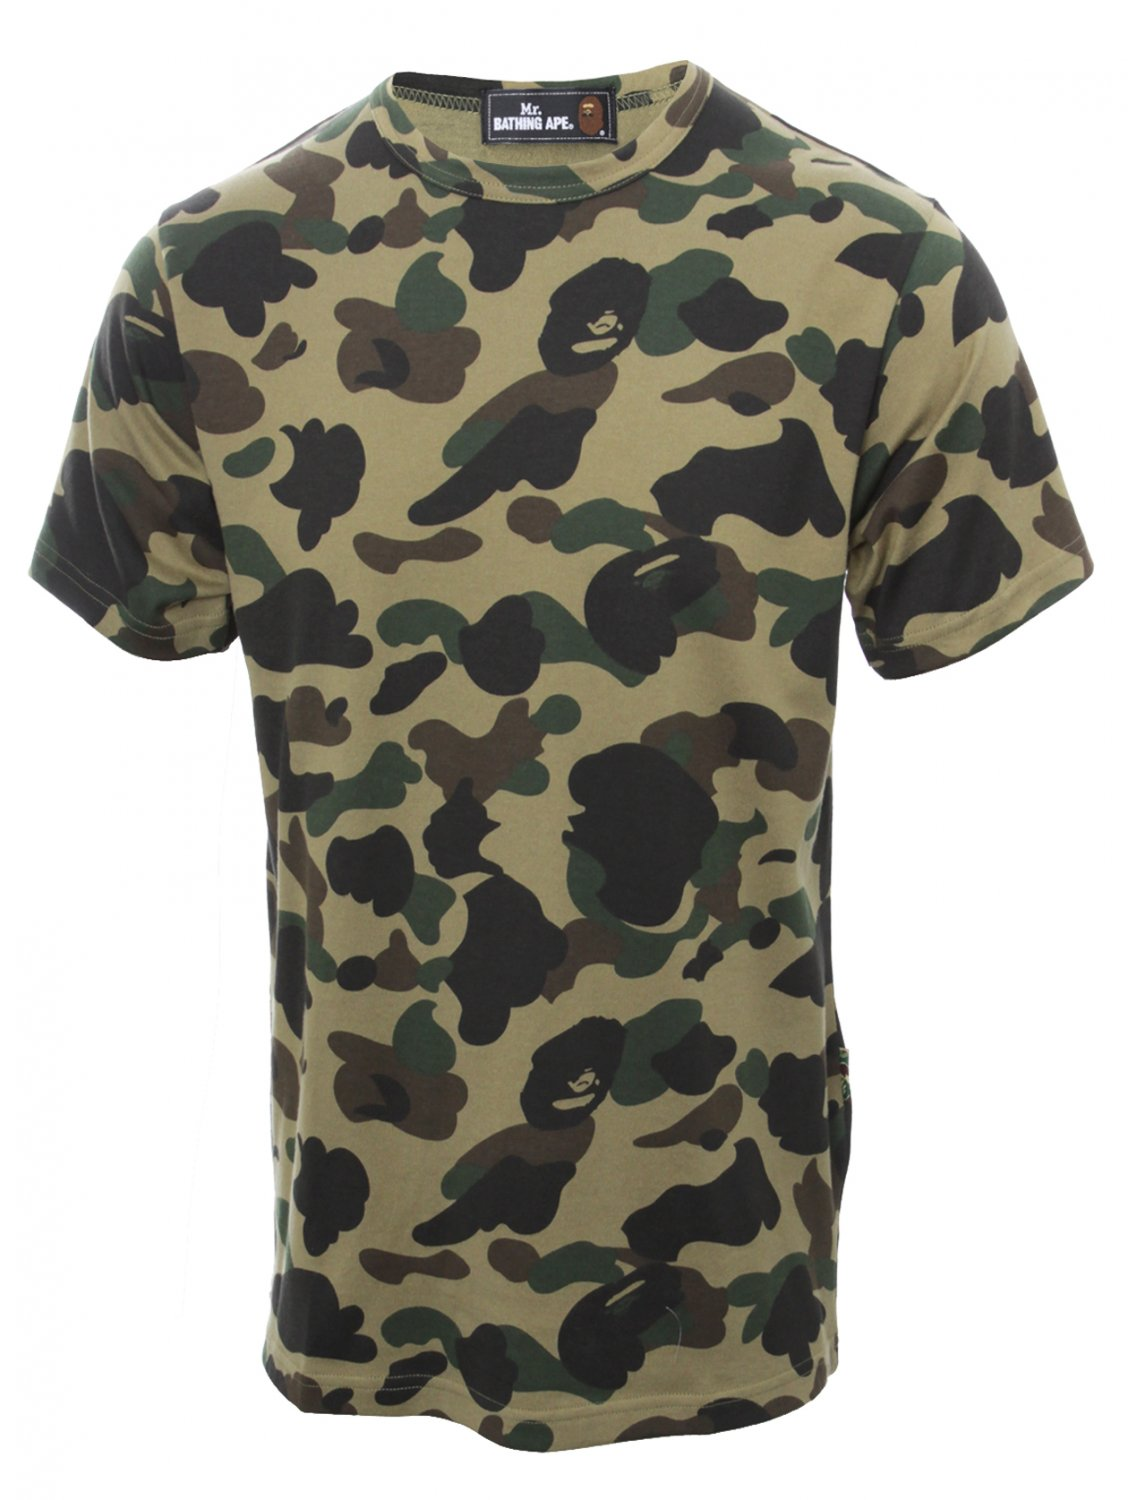 Mr bathing ape camouflage print t shirt green in green for Camo print t shirt